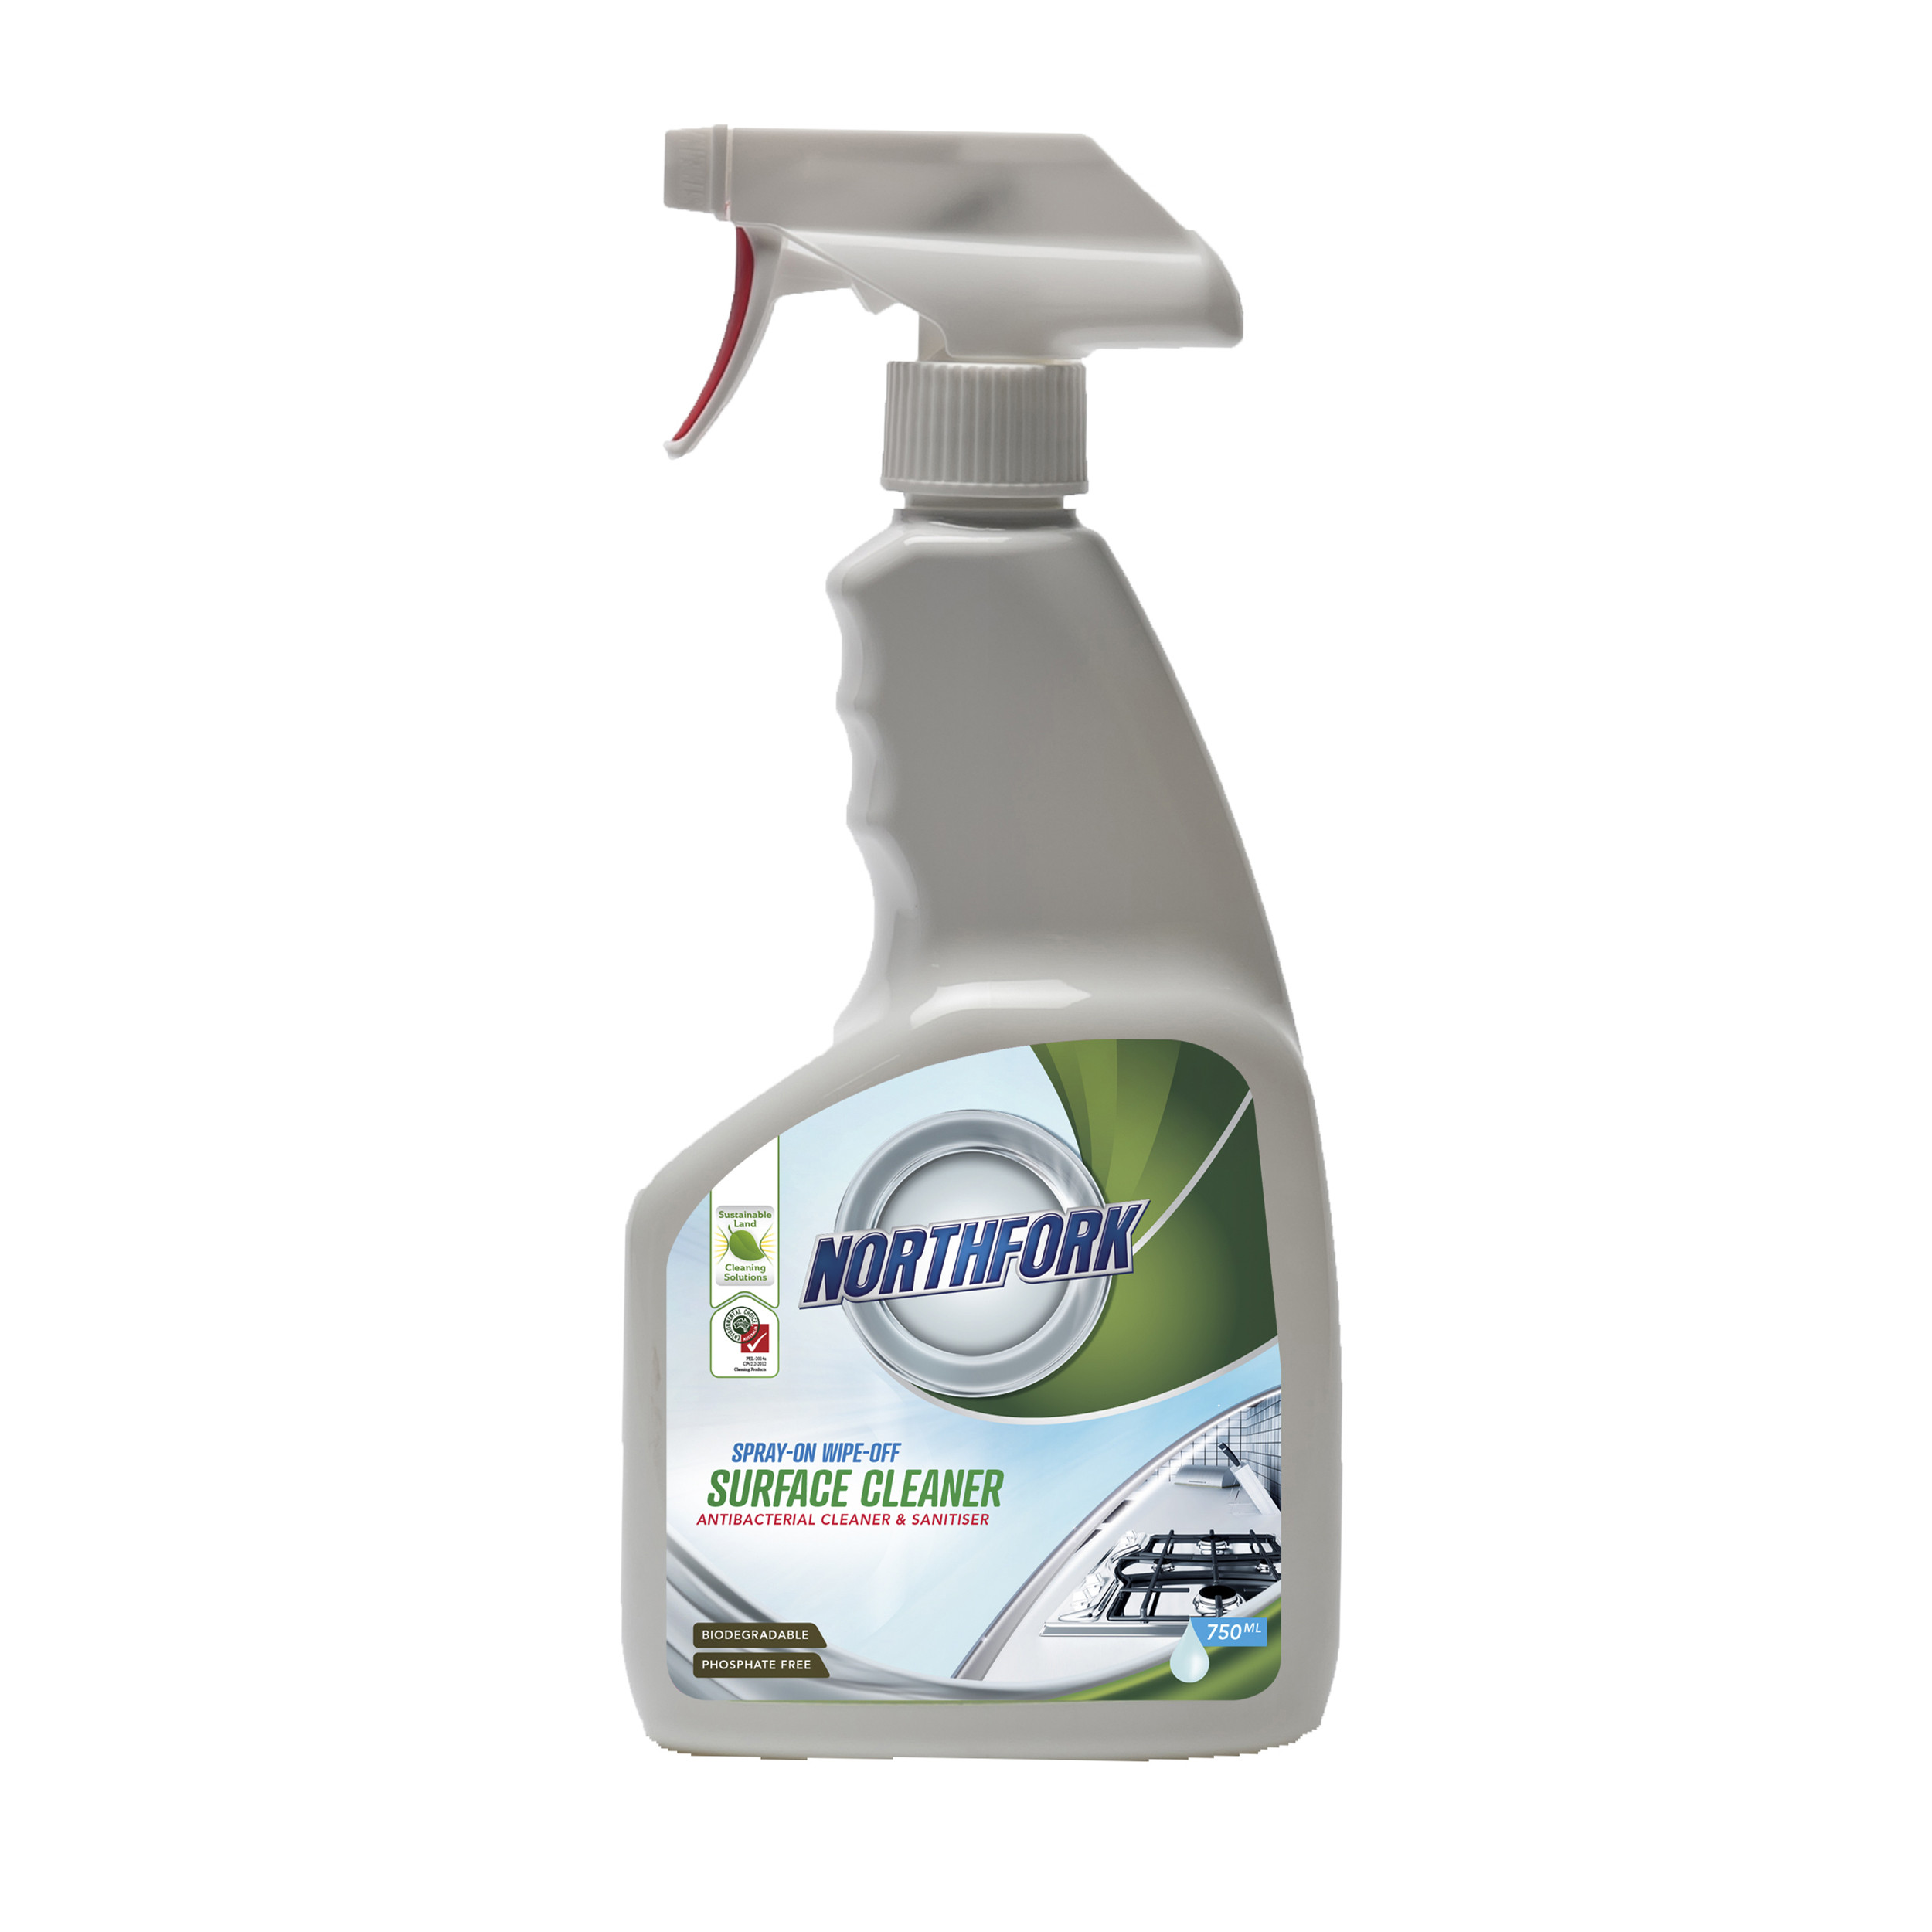 Northfork GECA Spray on Wipe Off Cleaner